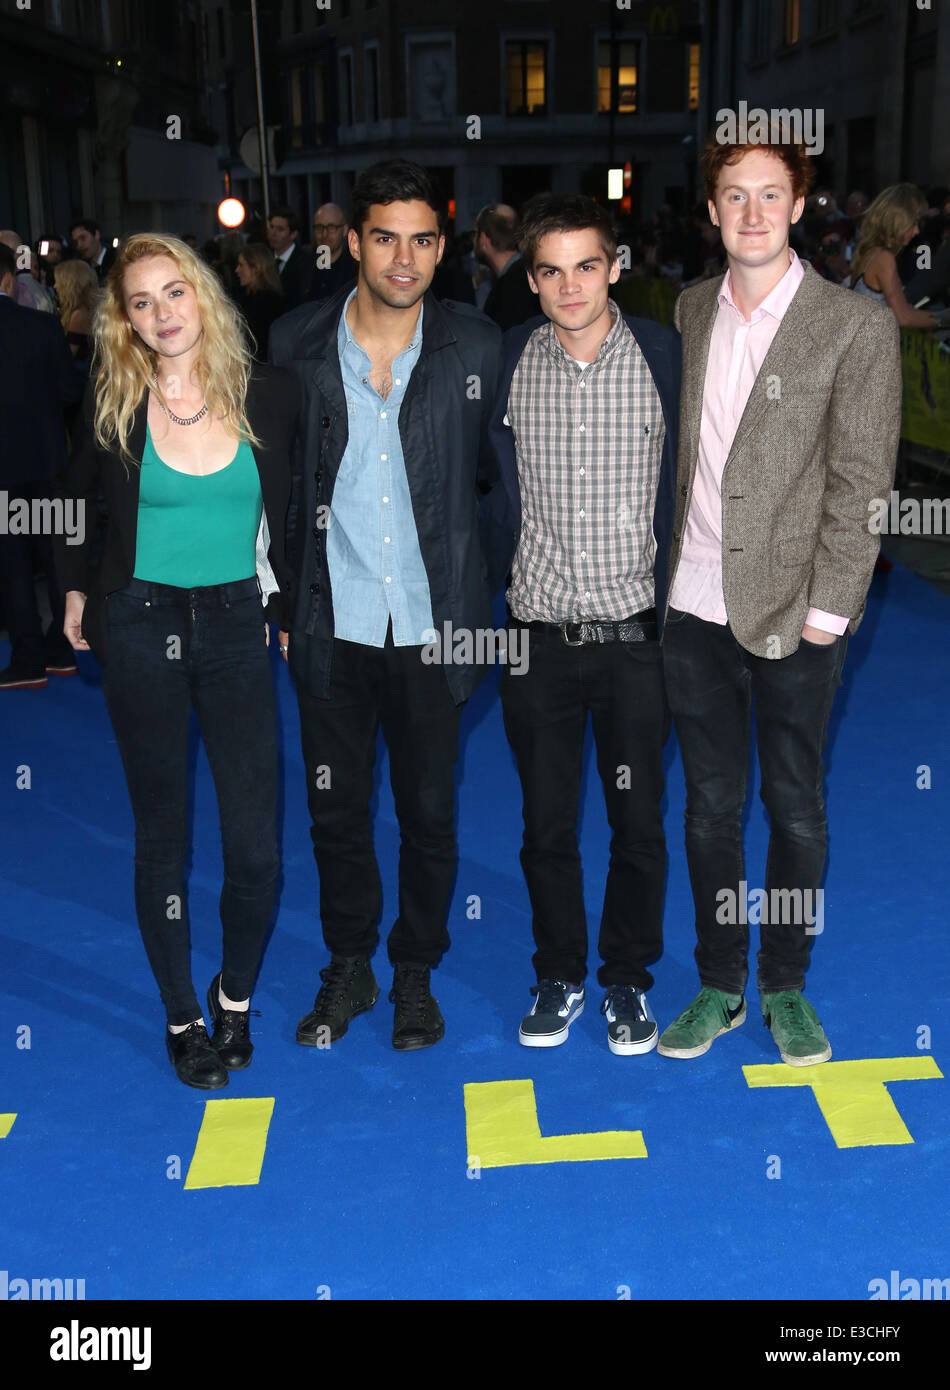 UK premiere of Filth held at the Odeon - Arrivals  Featuring: Freya Mavor,Sean Teale,Sam Jackson,Will Merrick Where: - Stock Image